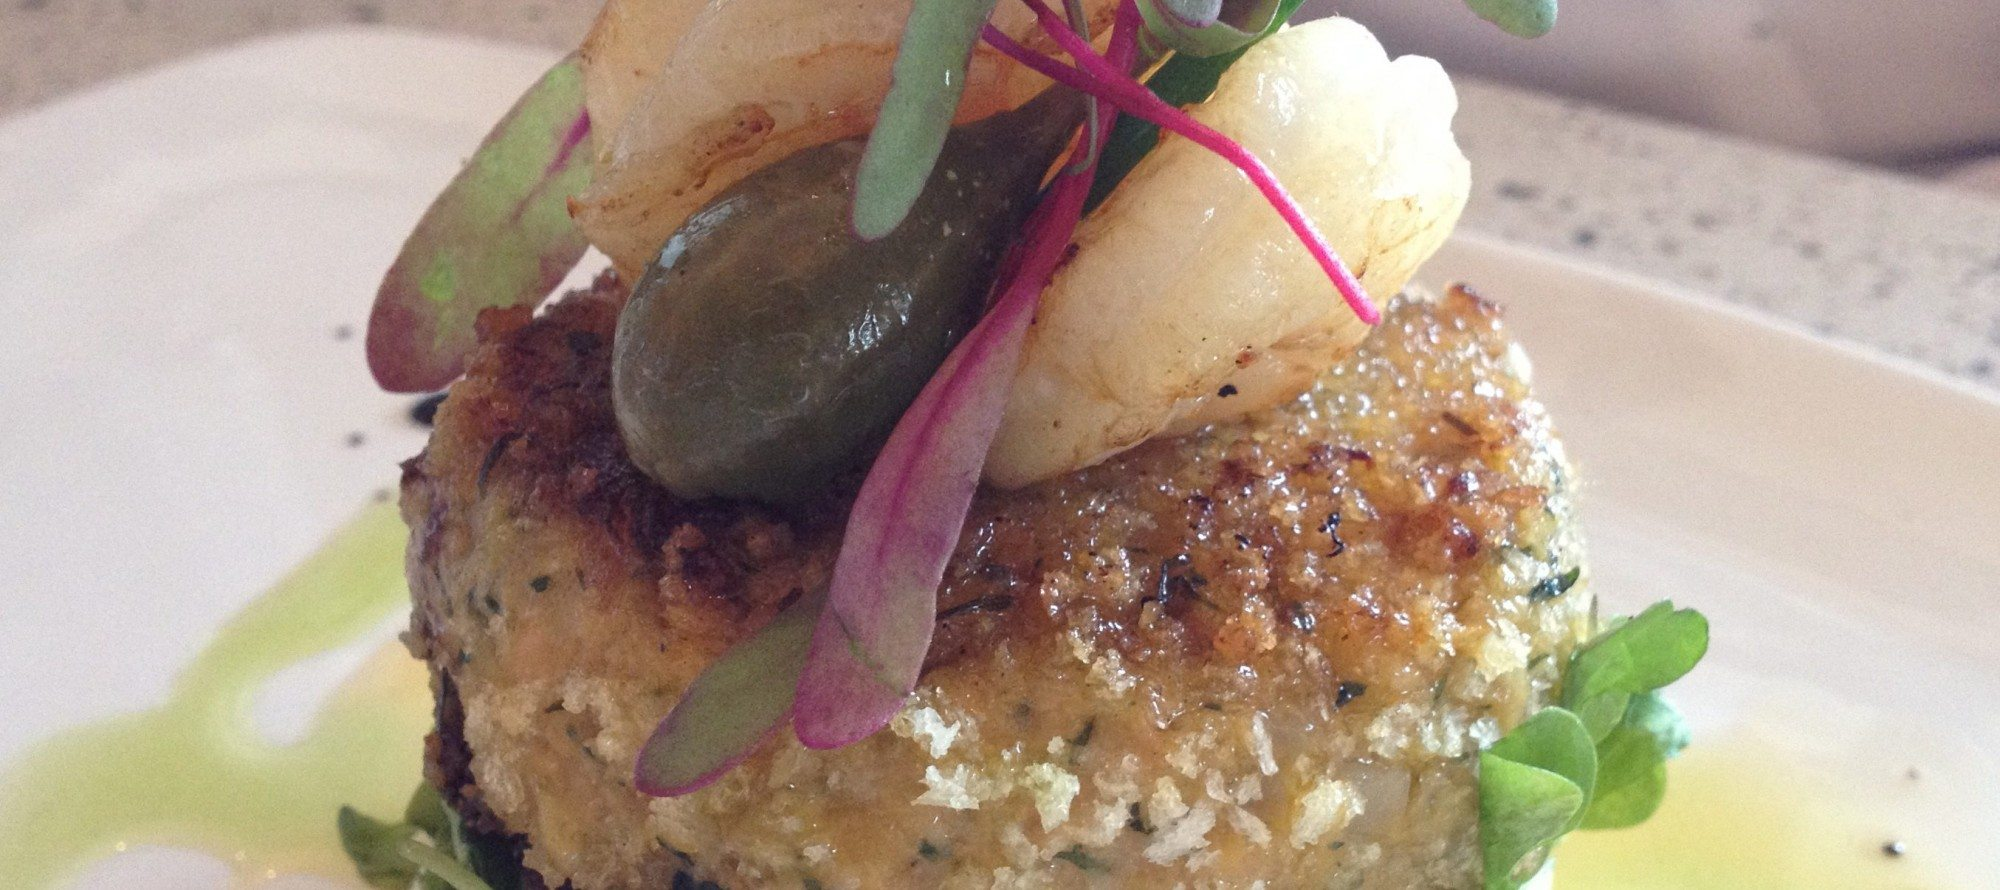 WEEKLY LUNCH PICK: A well-regarded chef resurfaces at Bistro Boréal at the Canadian Museum of Civilization